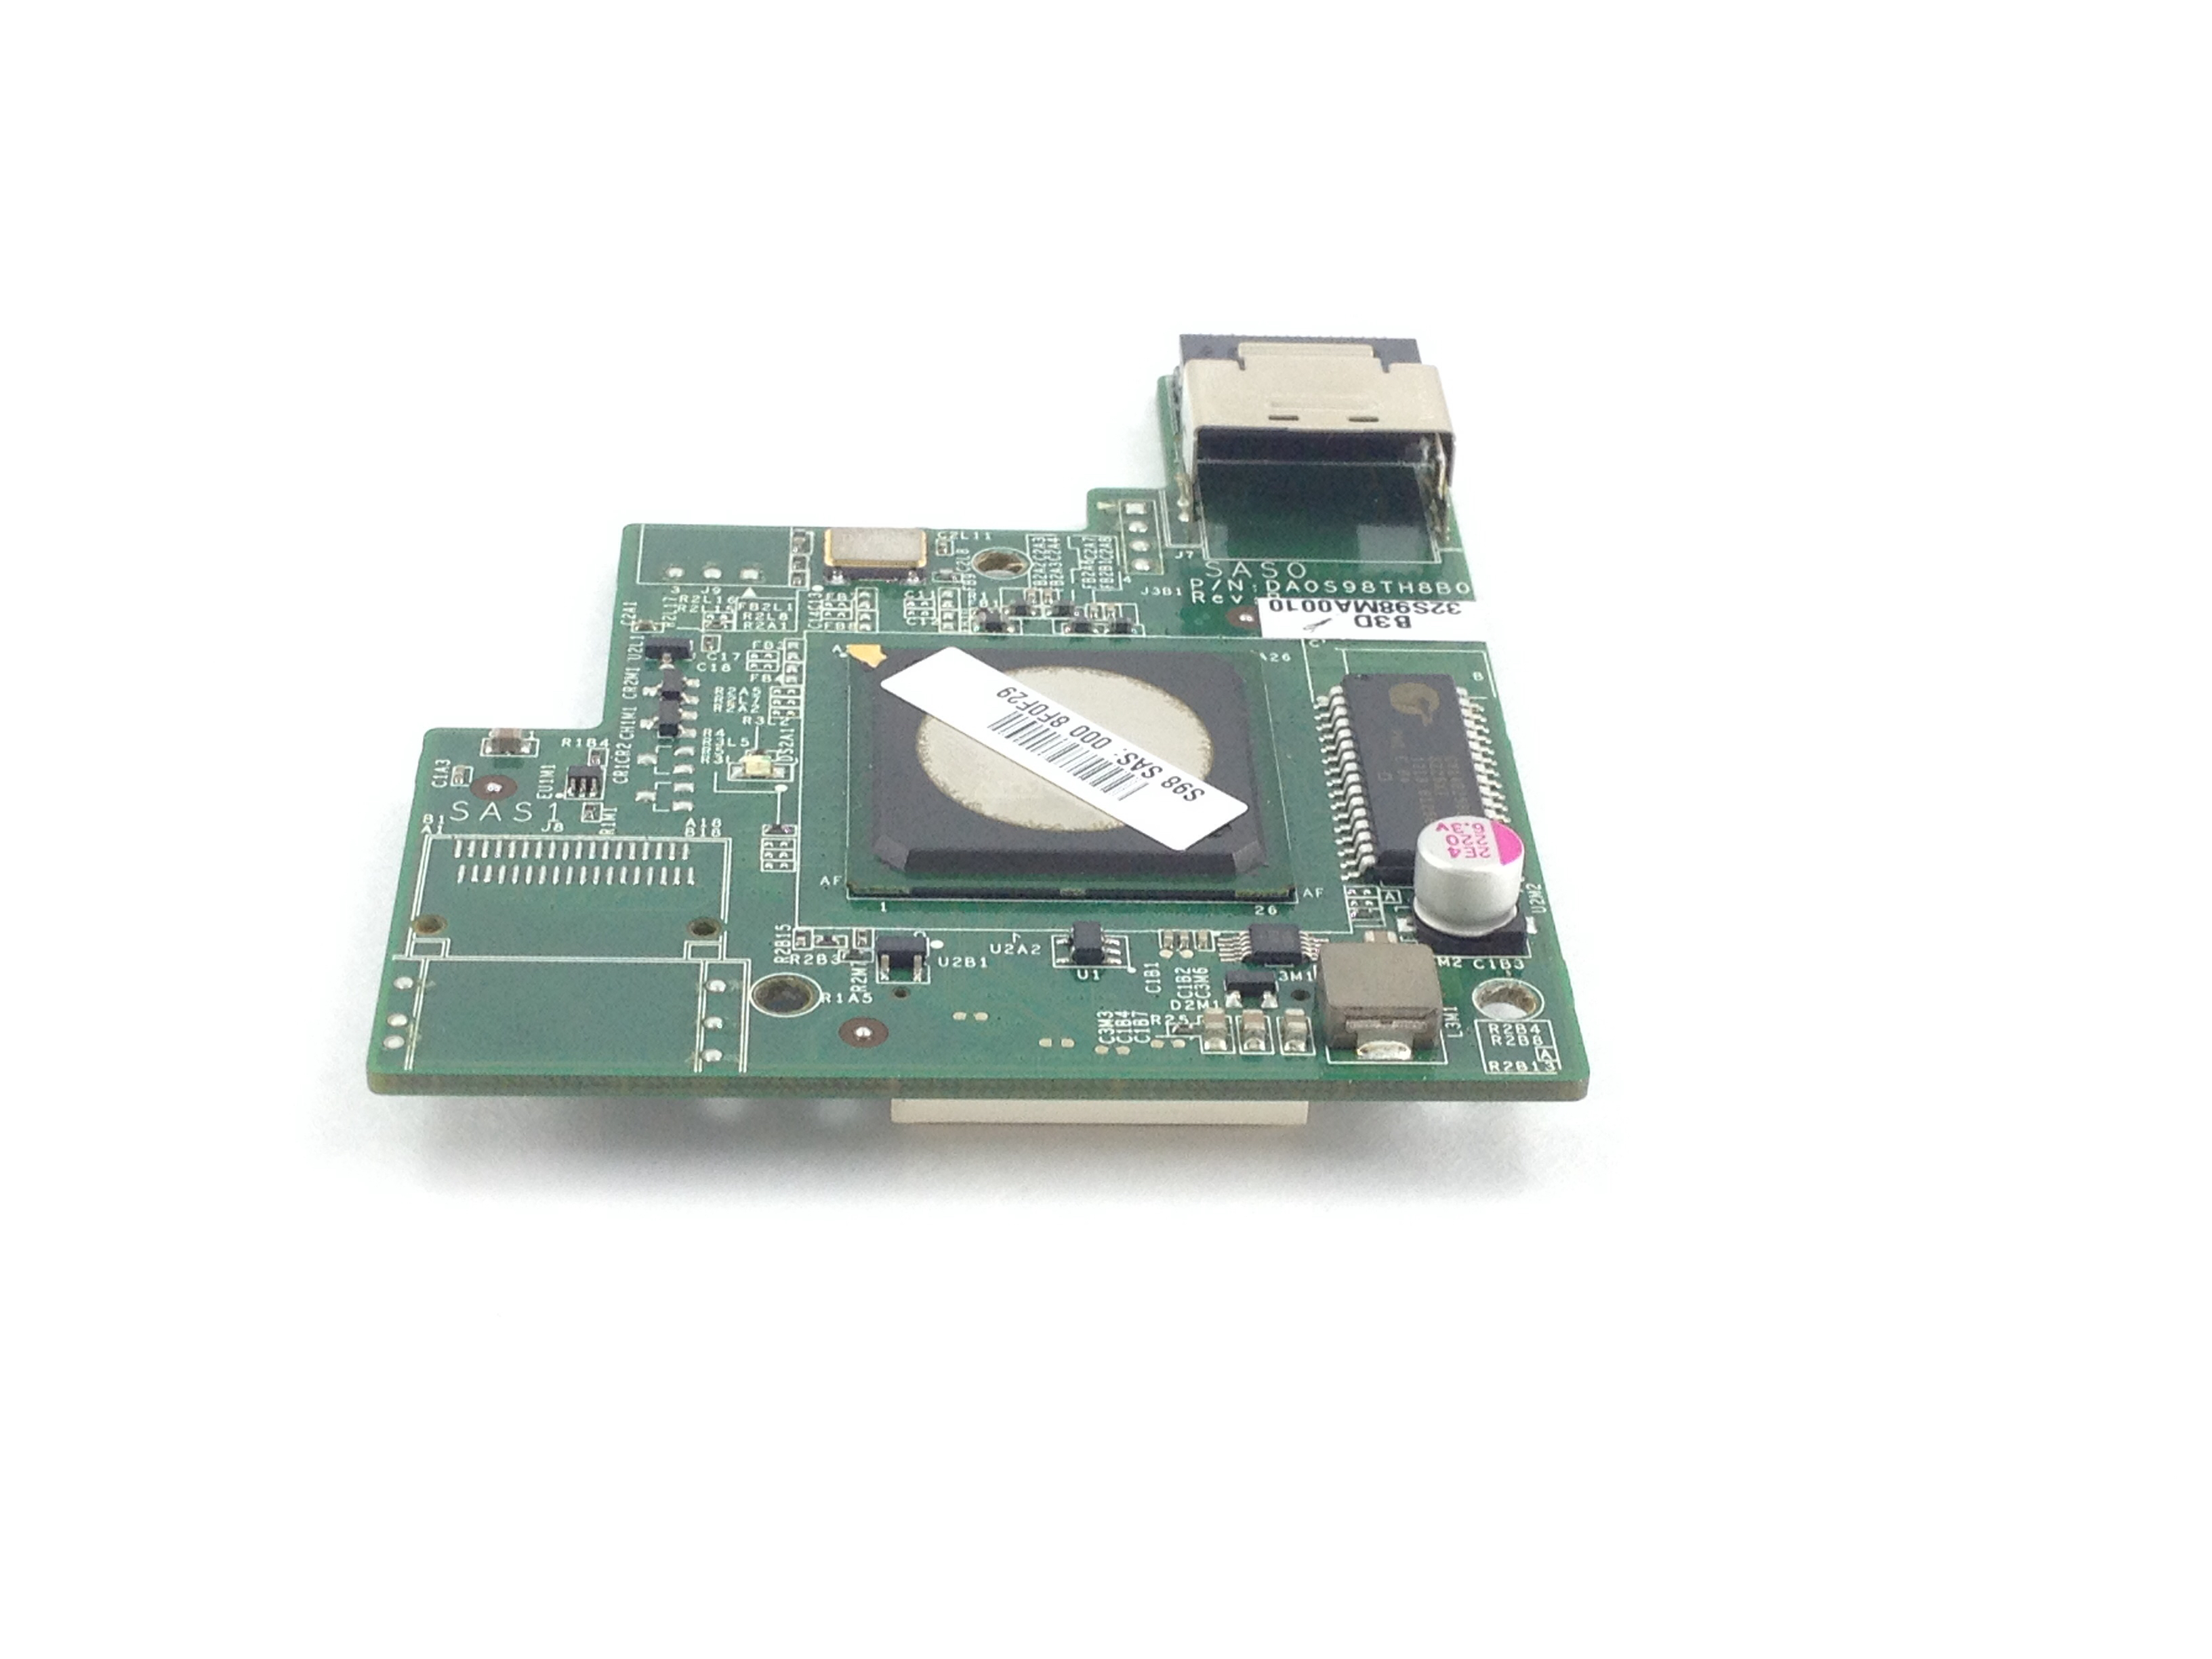 CISCO LSI 1064E 4-PORT MEZZANINE CONTROLLER CARD FROM UCS C200 M2 SERVER (DA0S98TH8B0)